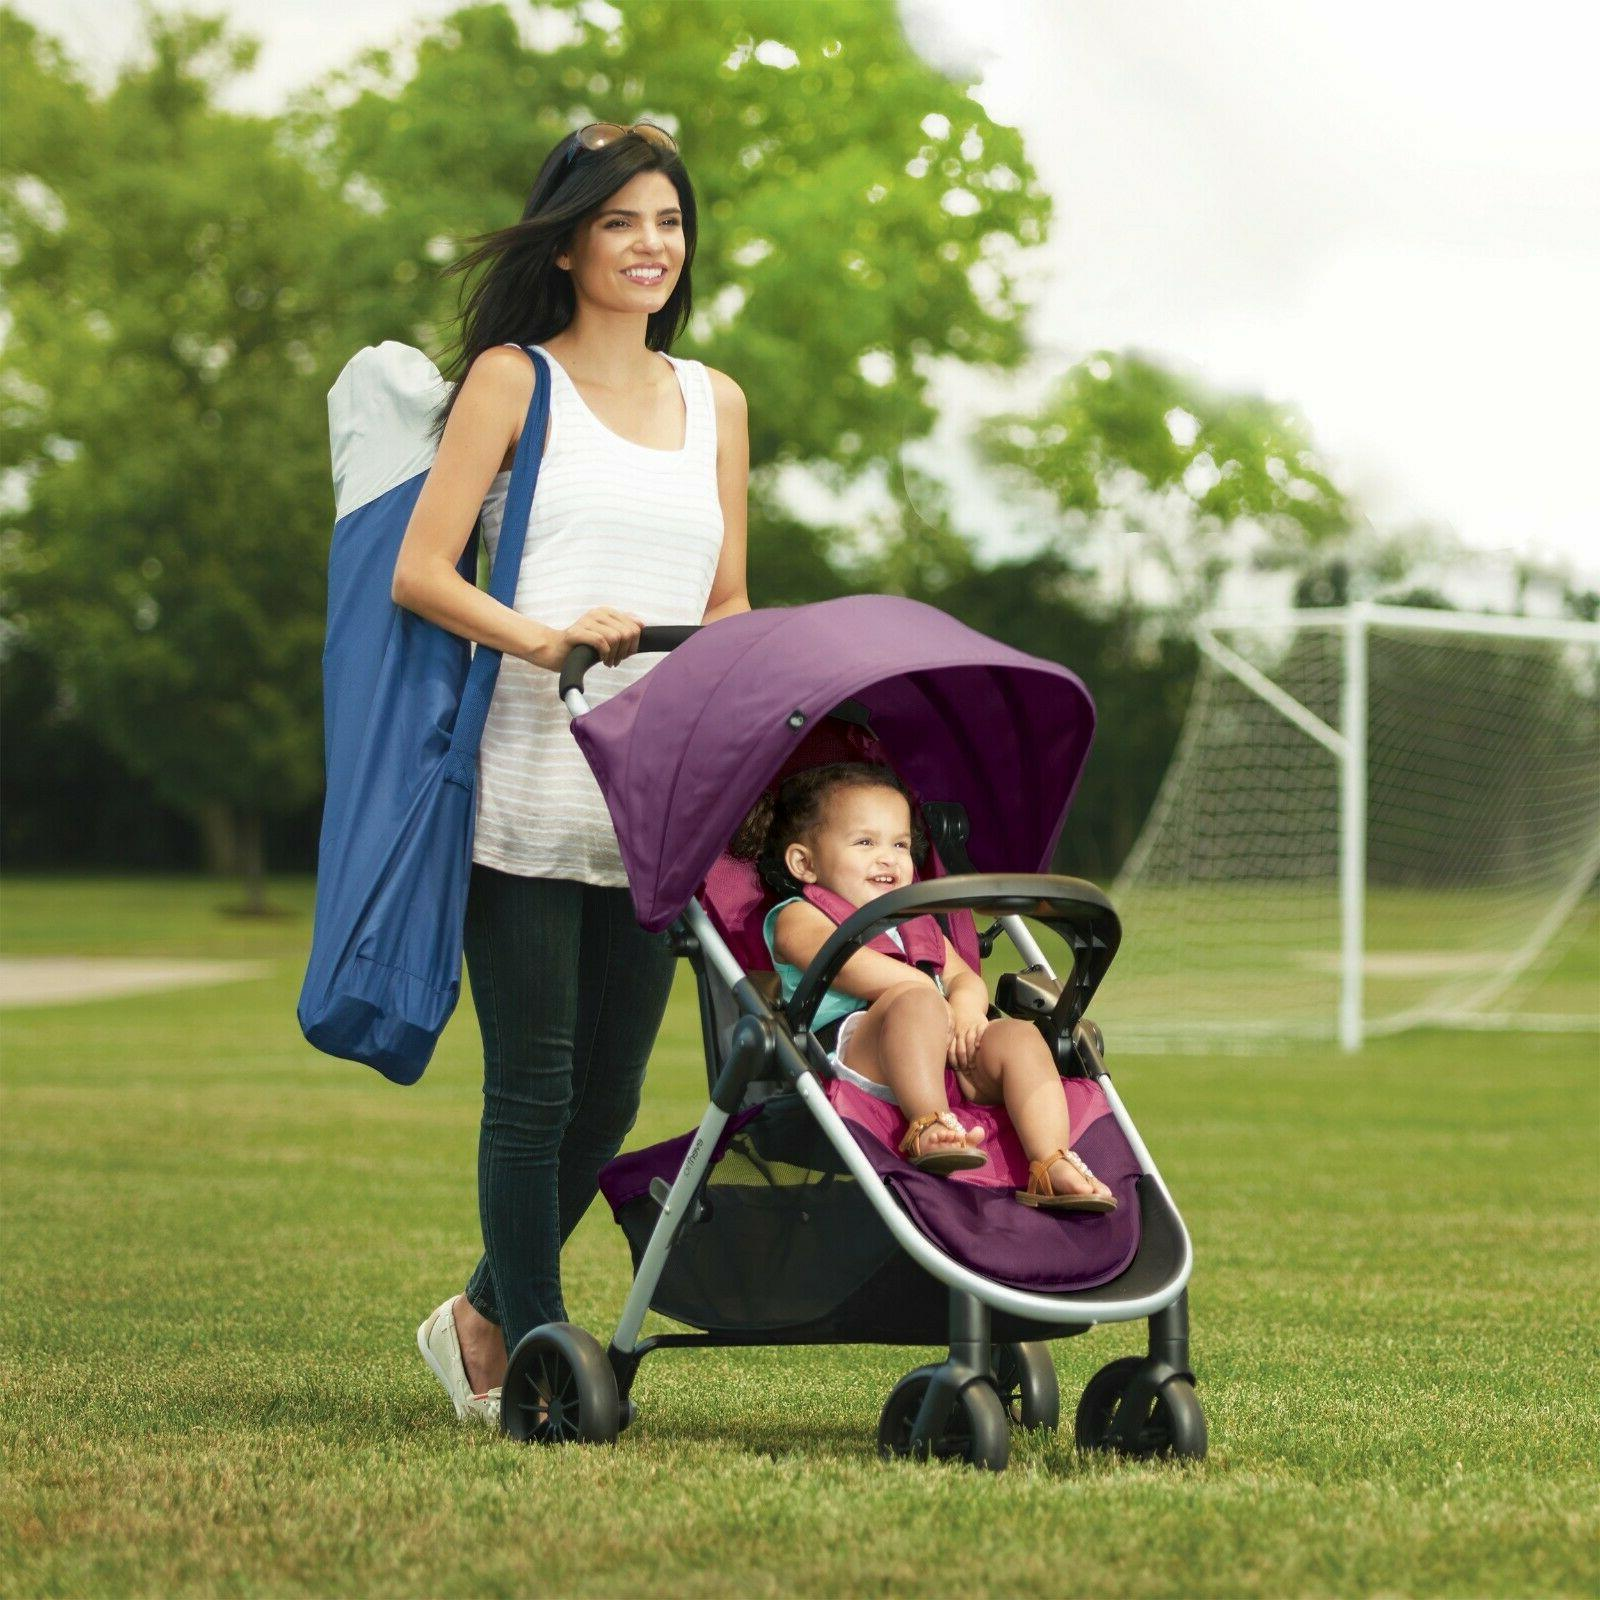 Evenflo Stroller Baby System with Litemax ICS,